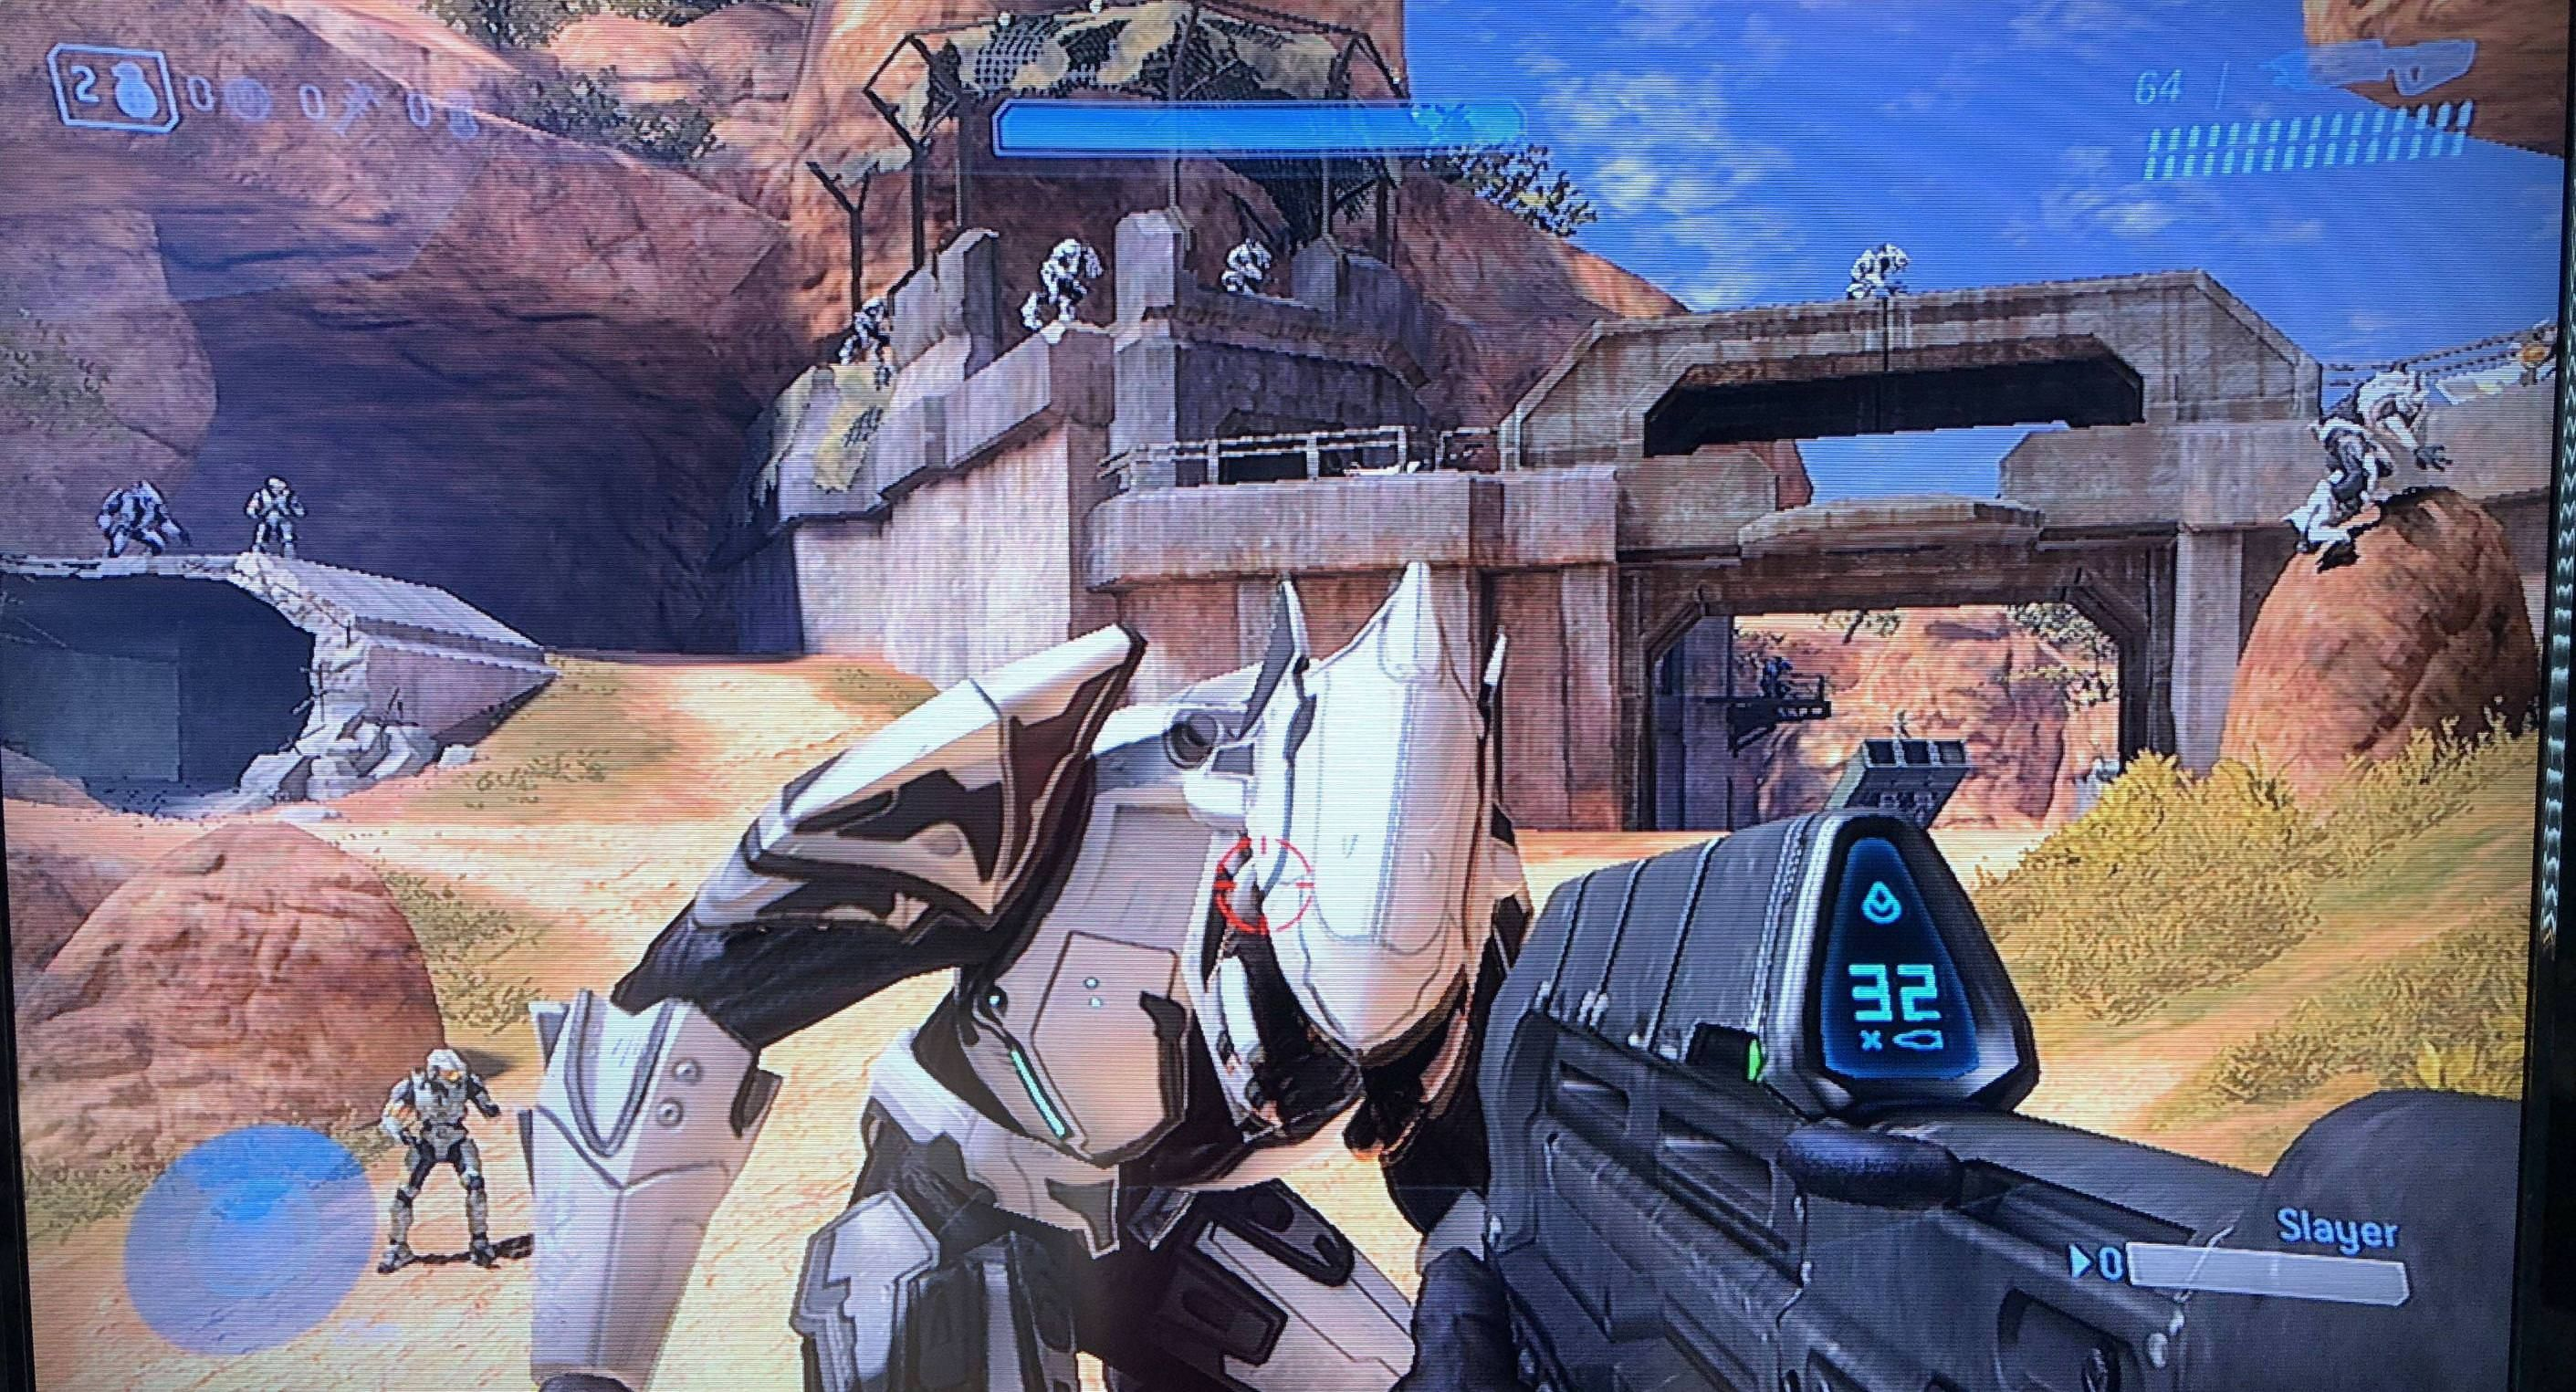 Played 2500 Halo 3 custom games back in the day  The mini